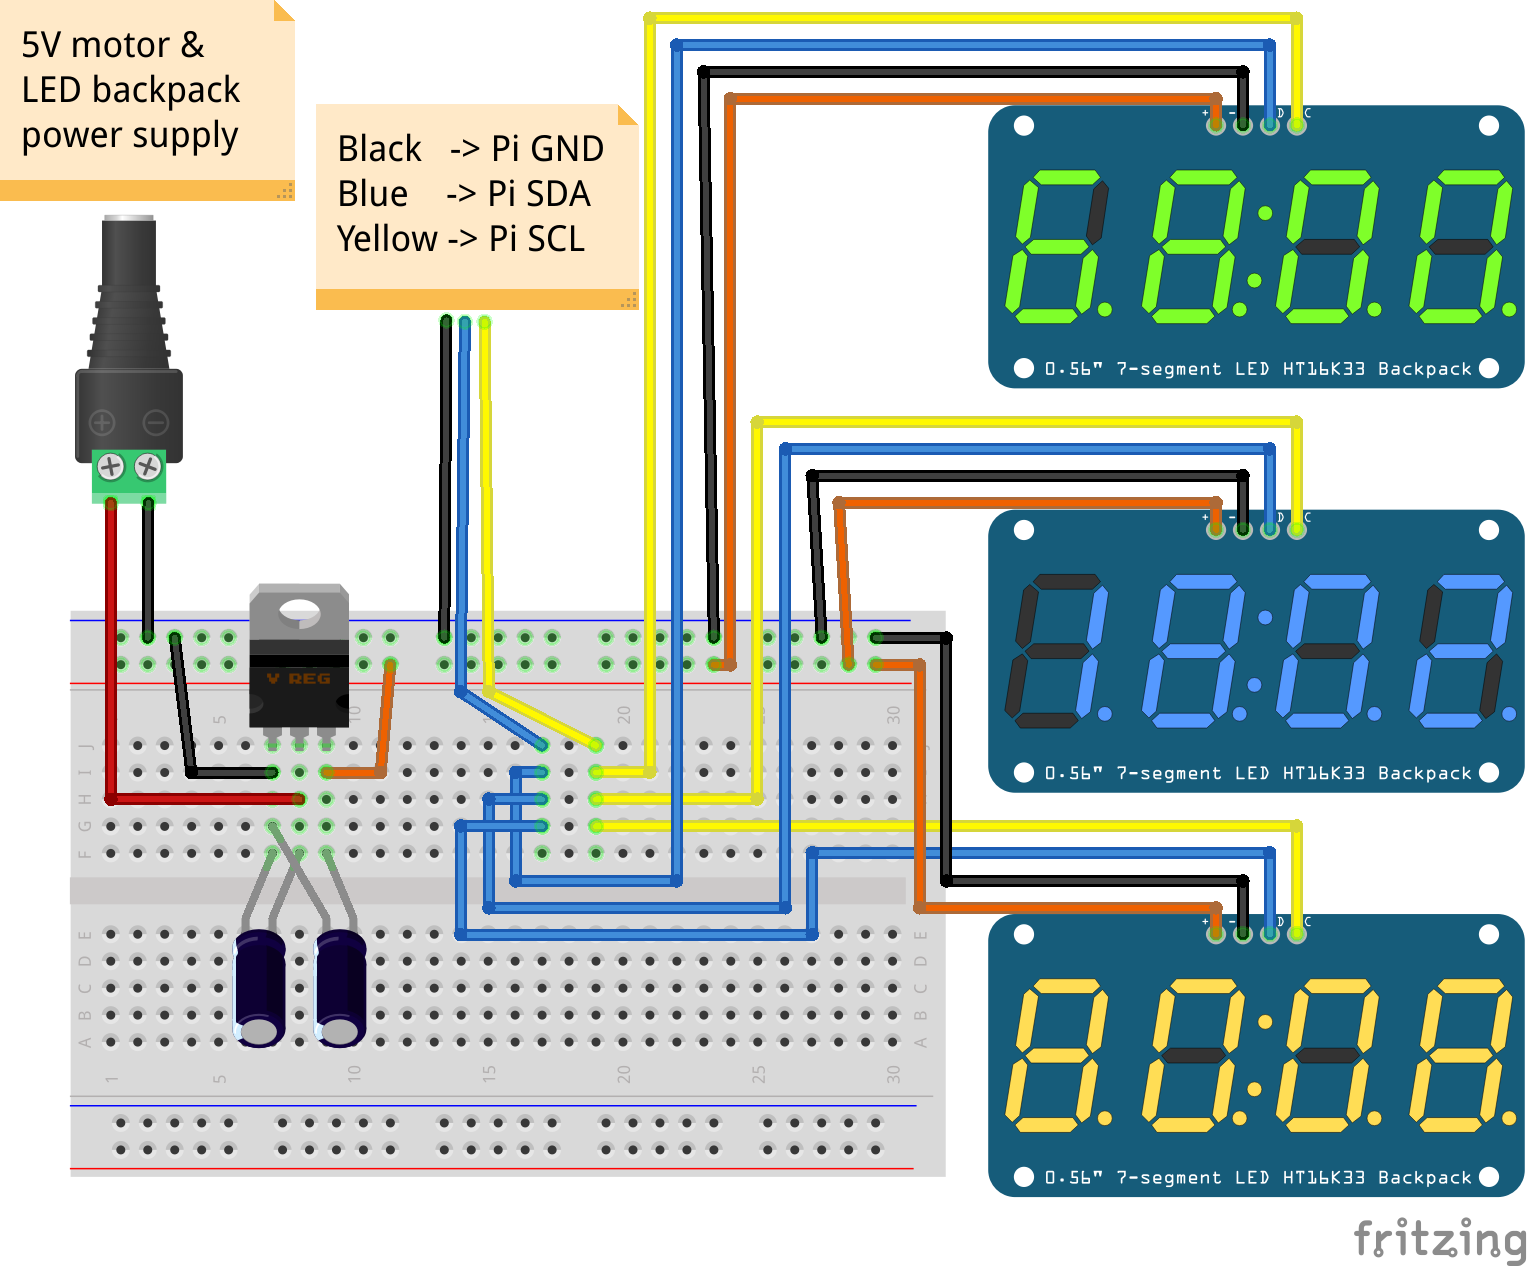 leds_wiring_bb.png